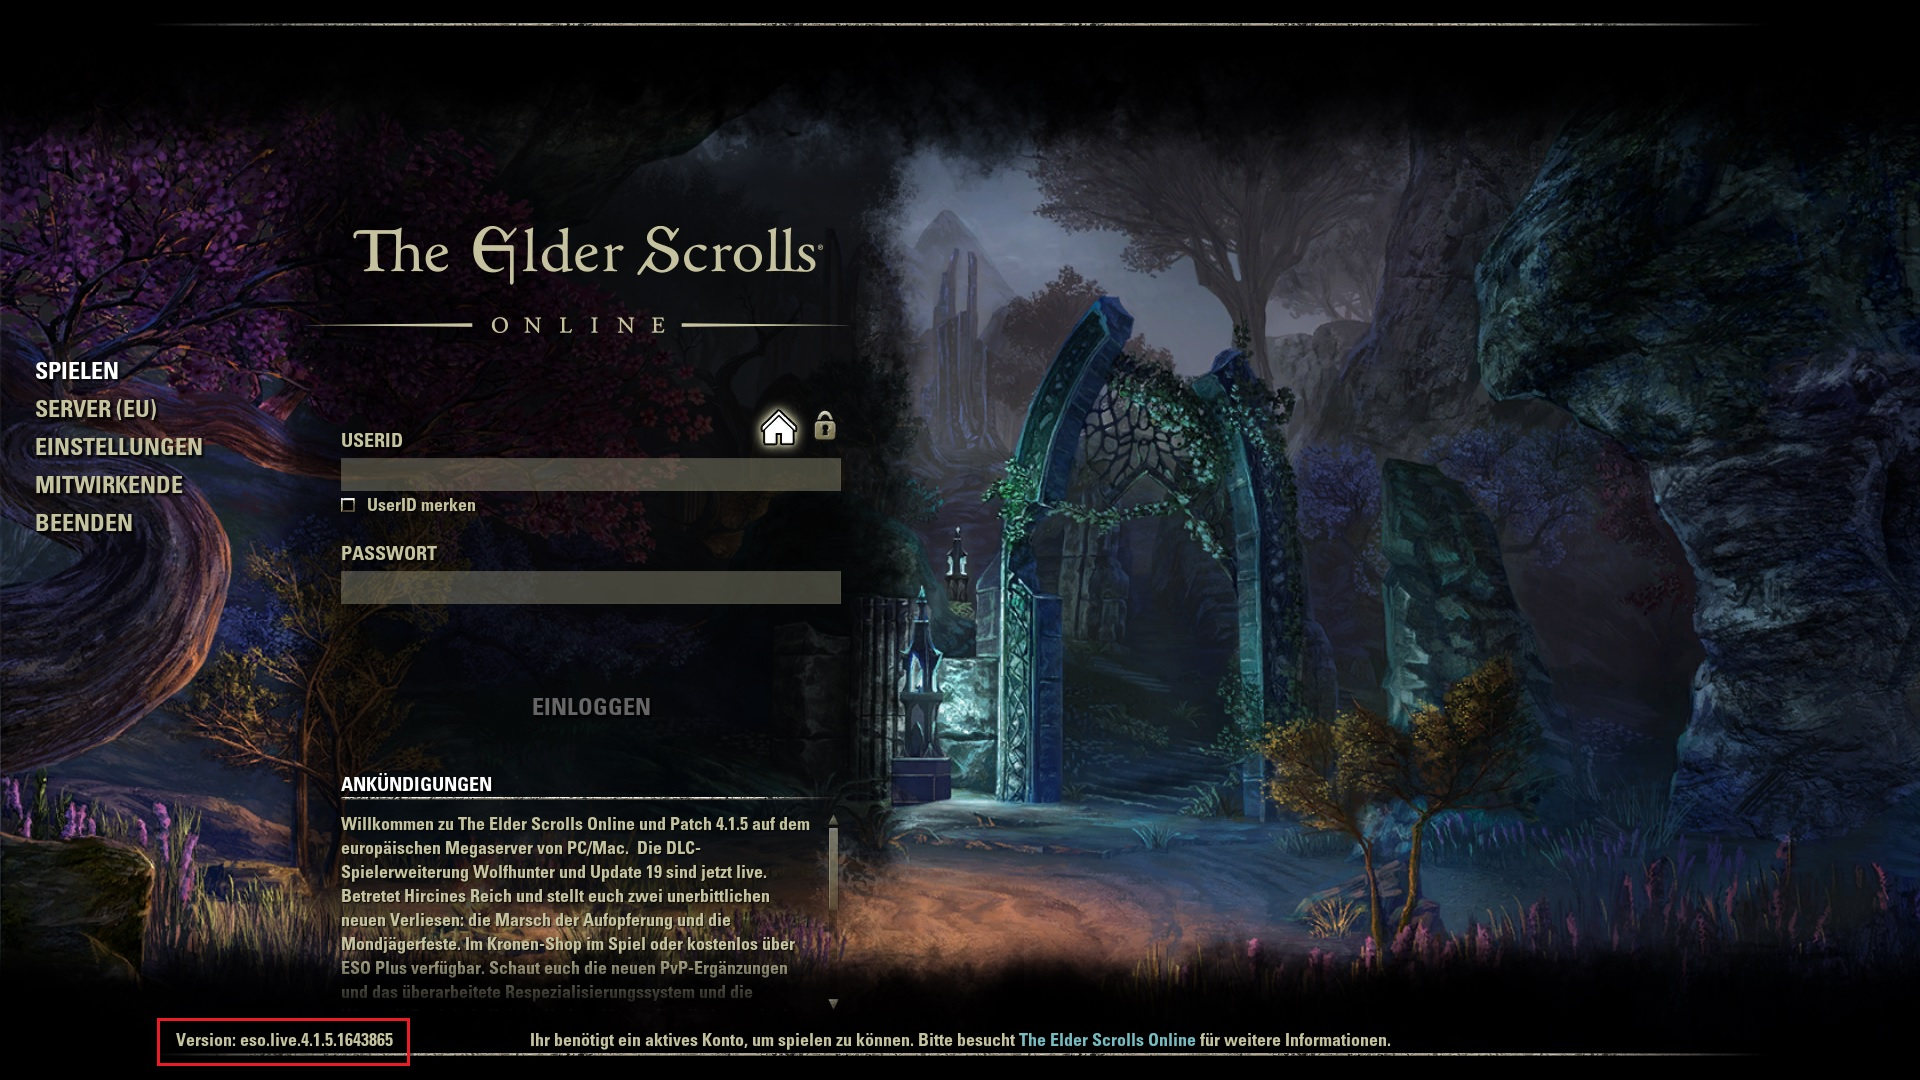 The Elder Scrolls Online - Game-Request | VulnDetect - An upcoming